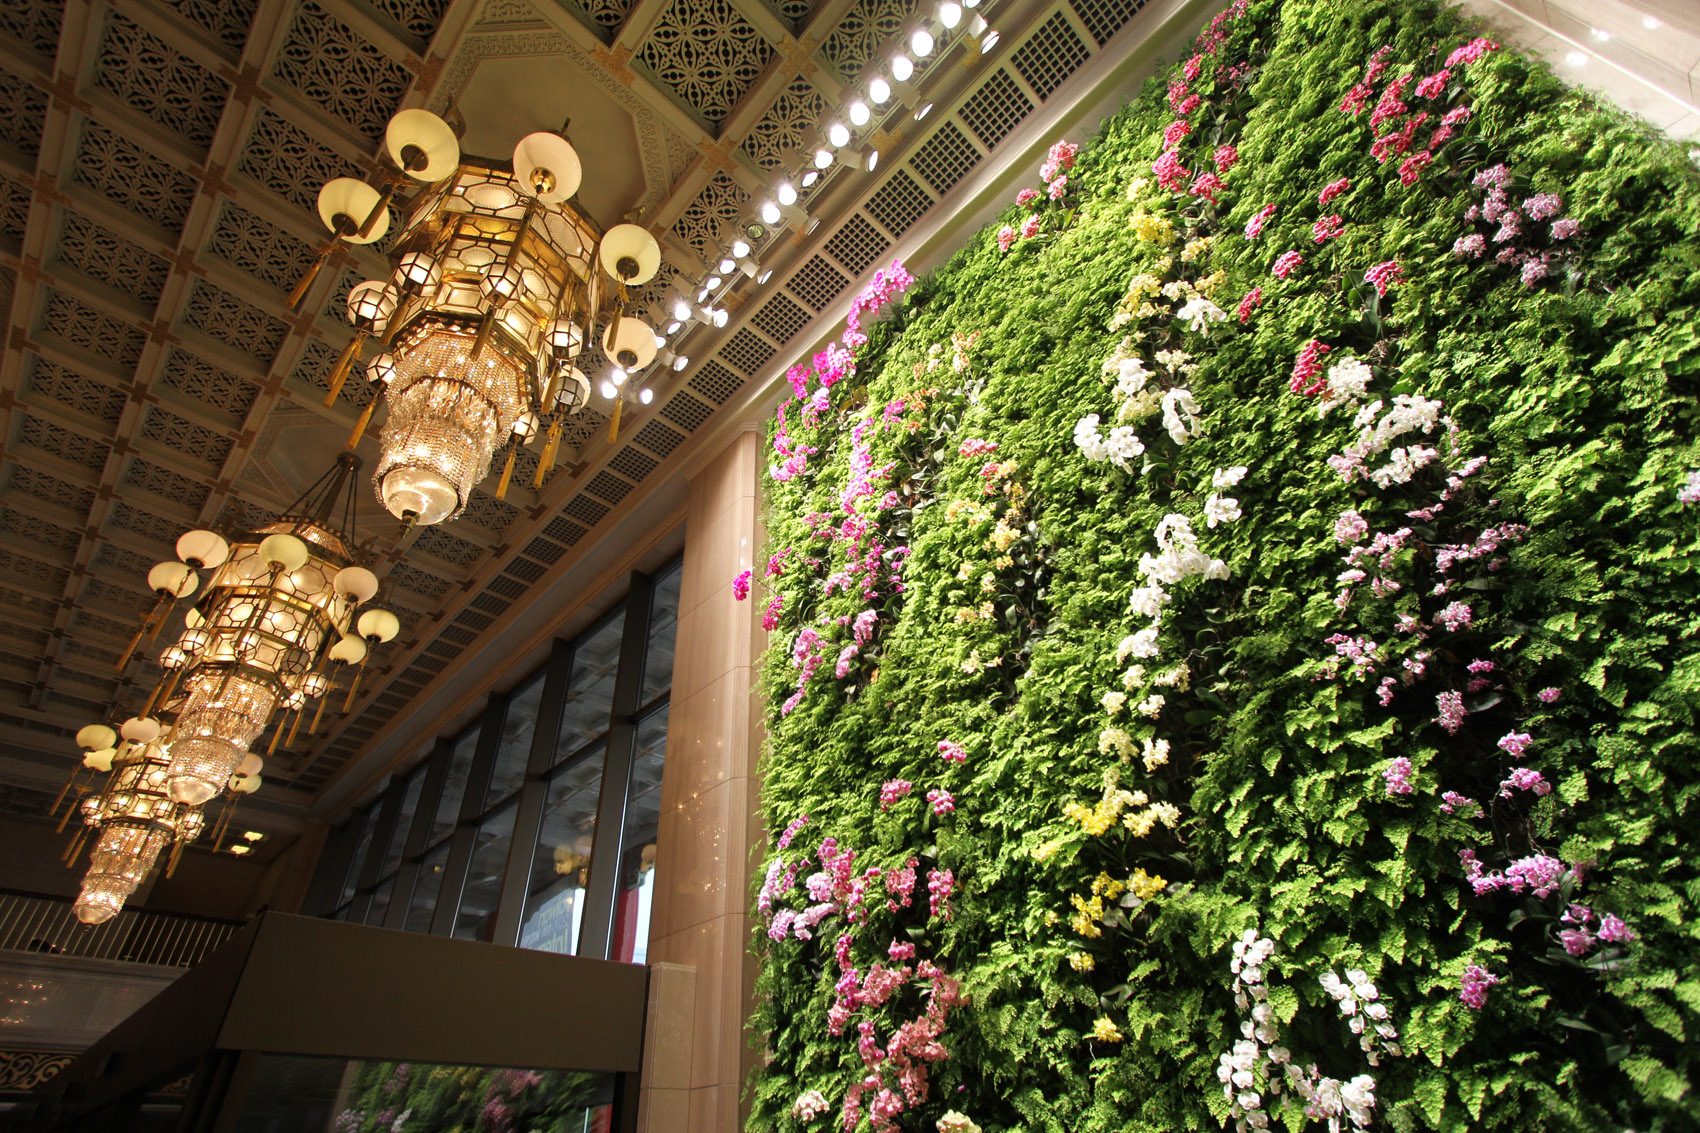 The vertical garden, Orchid Waltz, is erected by French botanist Mr. Patrick Blanc in the National Theater in December 2009 in Taipei.